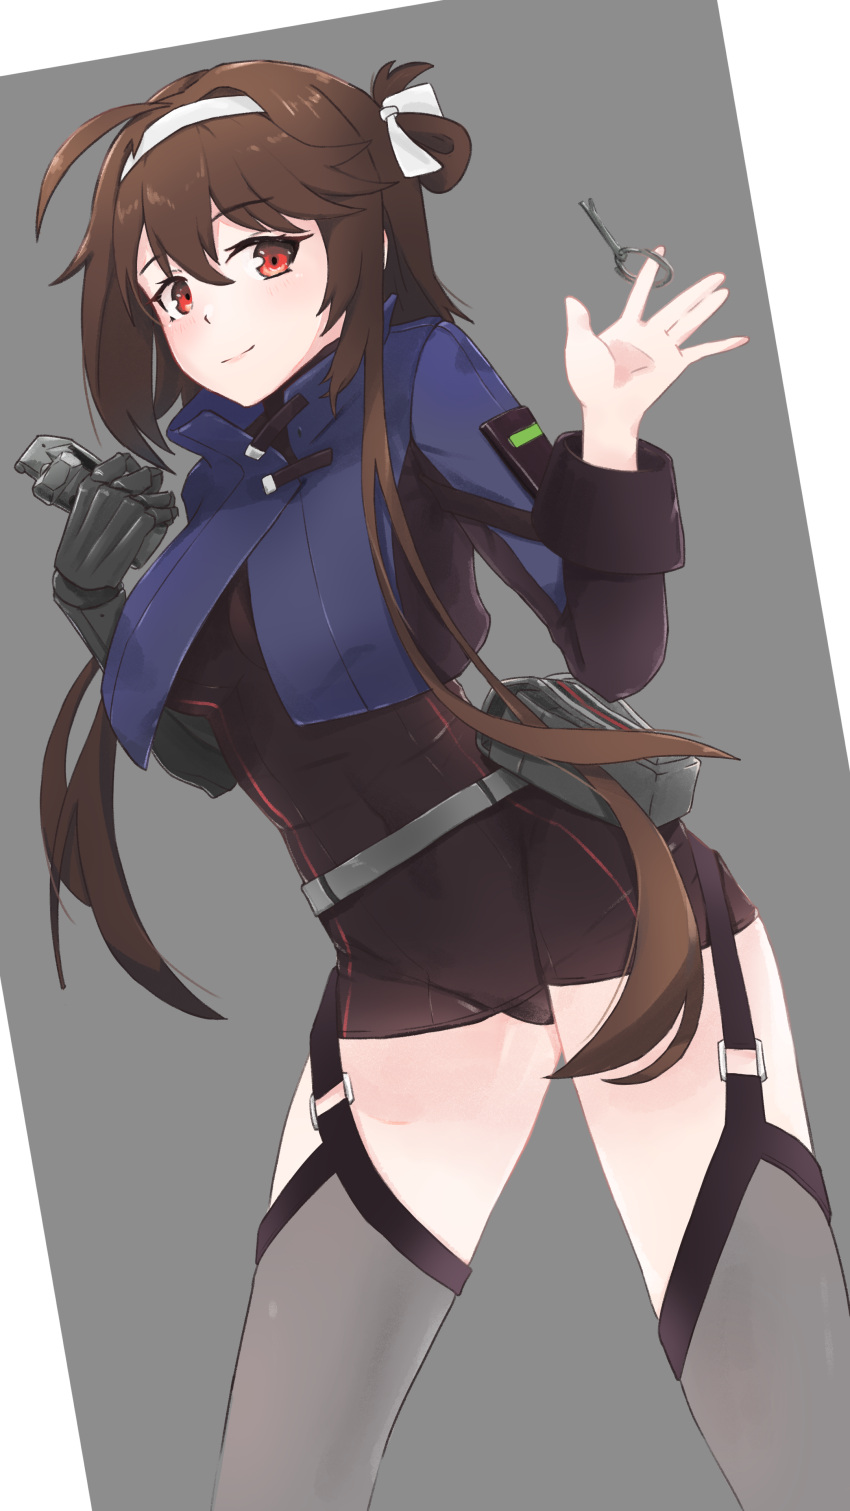 1girl \||/ absurdres ahoge asymmetrical_sleeves belt_pouch black_gloves black_leotard blue_jacket breasts brown_hair contrapposto cowboy_shot cropped_jacket dutch_angle explosive eyelashes folded_hair garter_straps girls_frontline gloves grenade grenade_pin grey_background grey_legwear hair_ribbon hands_up highres holding_grenade jacket large_breasts leotard light_smile looking_at_viewer mechanical_arms nabiyan navel pouch red_eyes ribbon short_hair_with_long_locks simple_background single_mechanical_arm solo thigh-highs thighs tied_hair type_79_(girls_frontline) white_ribbon